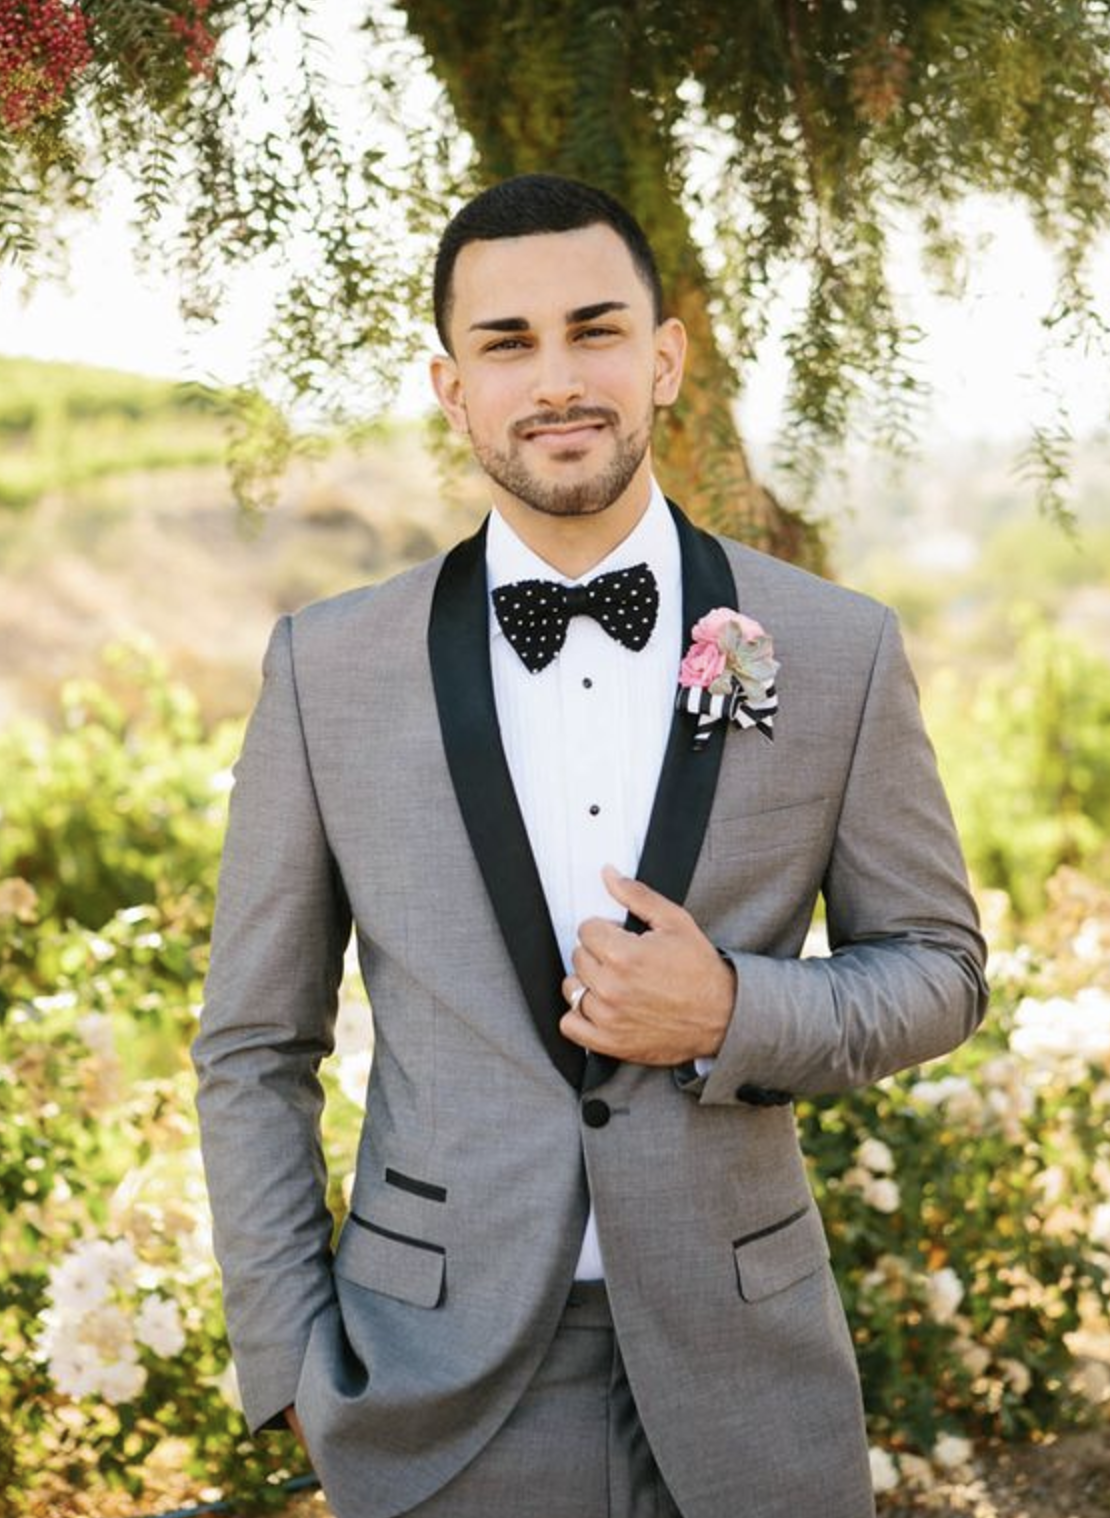 12 summer wedding suit ideas for grooms | Summer wedding suits ...